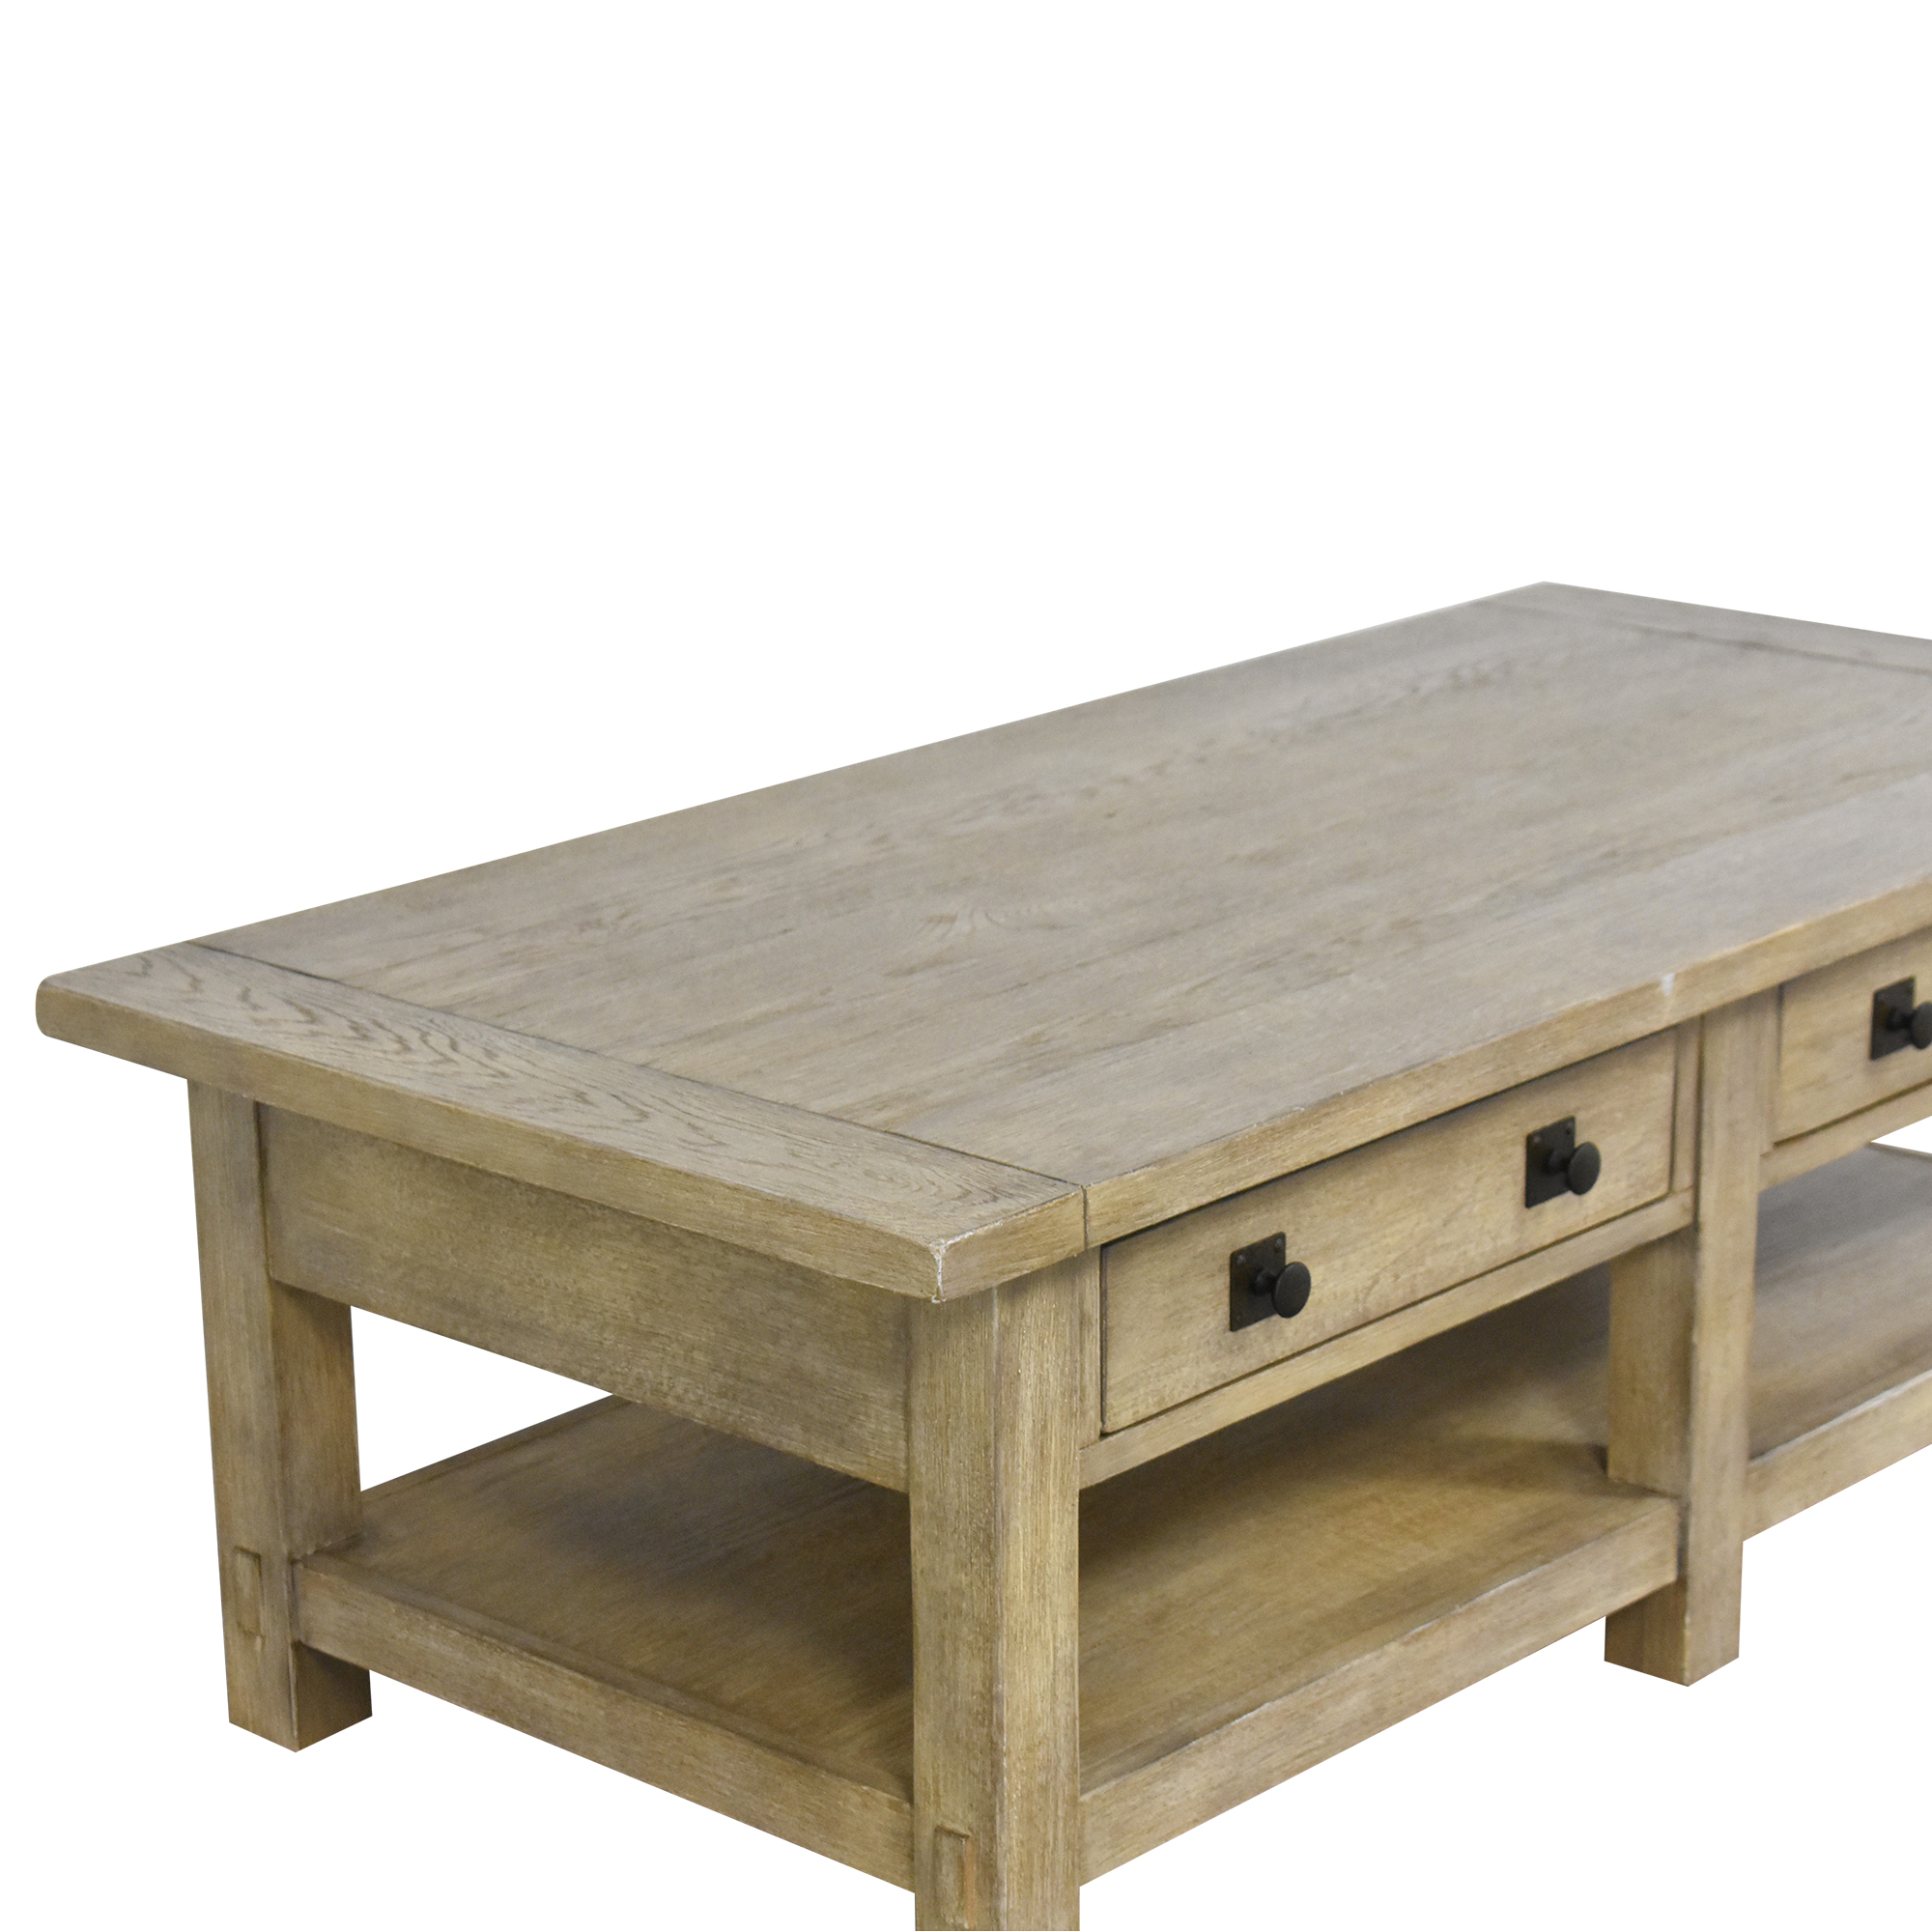 Pottery Barn Benchwright Coffee Table sale